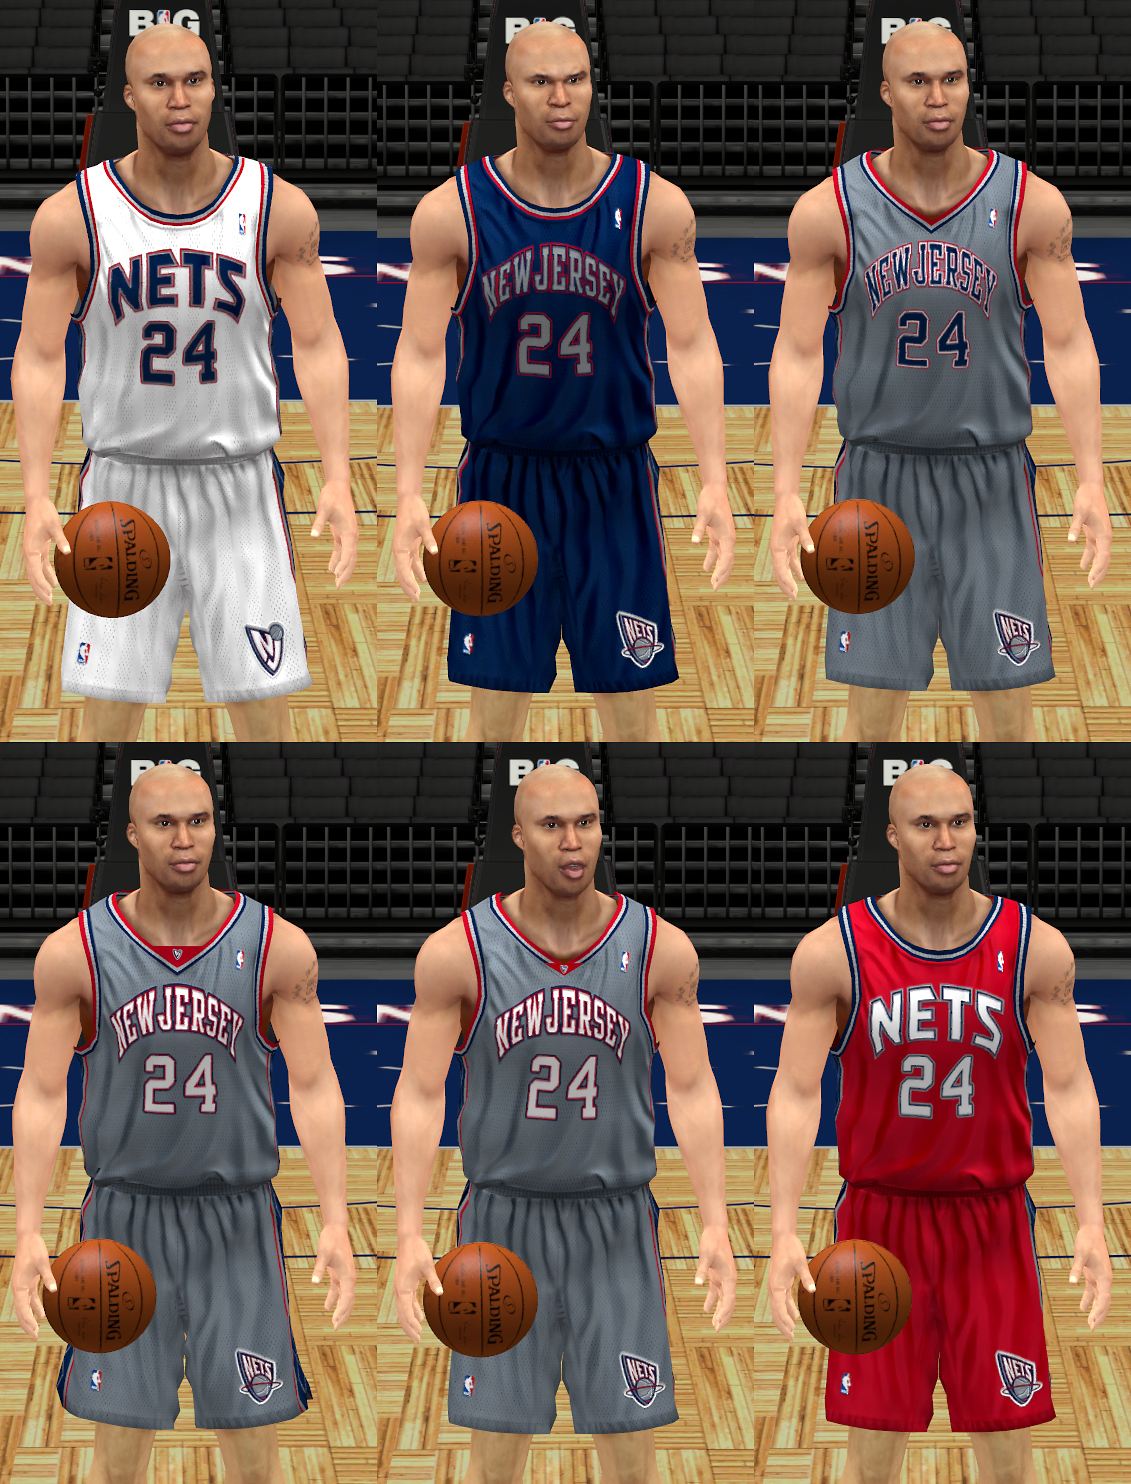 2000s New Jersey Nets Uniforms